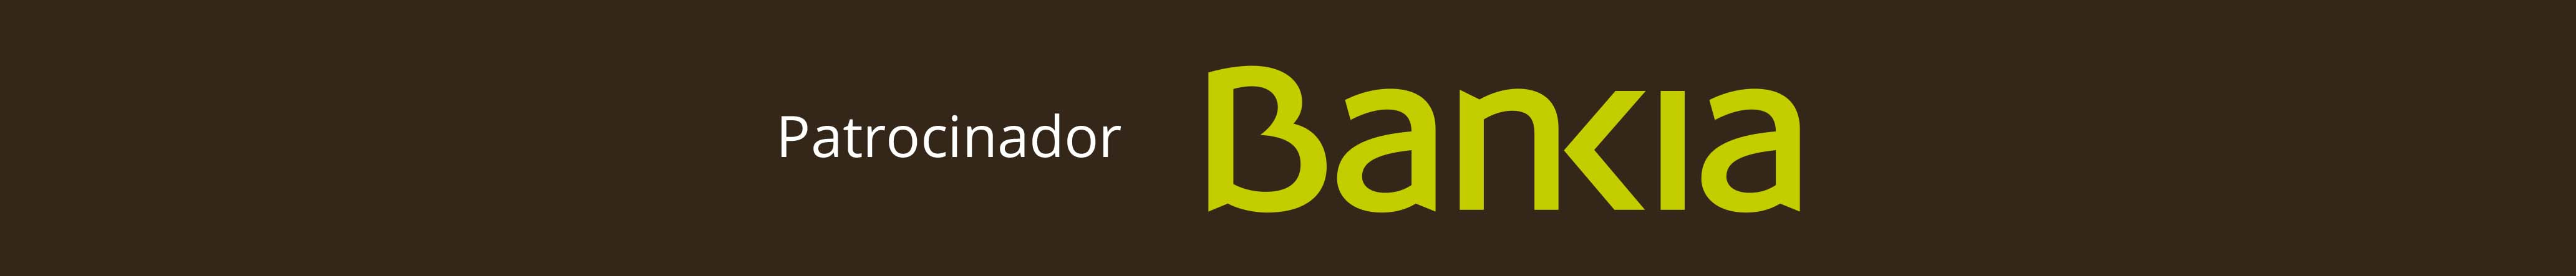 Bankia, patrocinador exclusivo del sector financiero